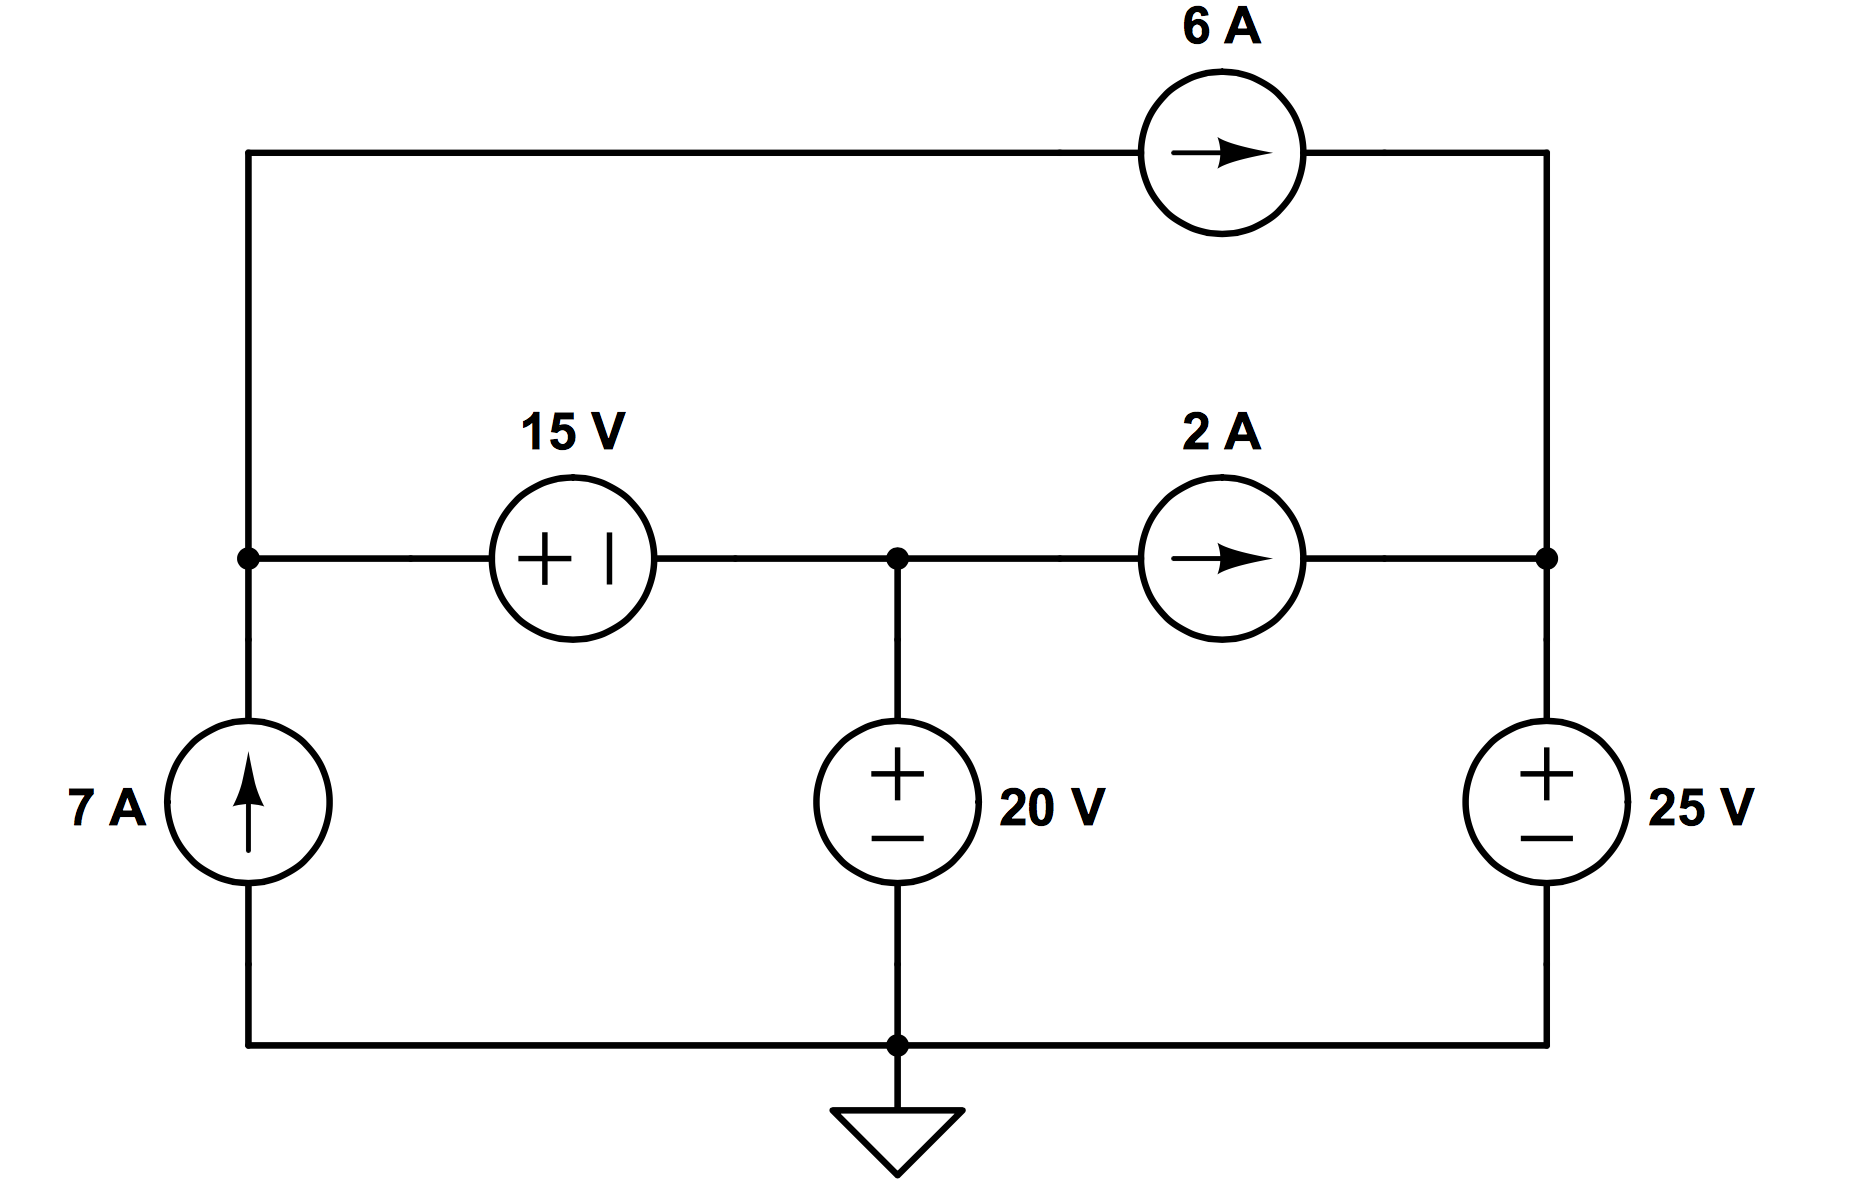 hight resolution of consider the circuit diagram provided in the link